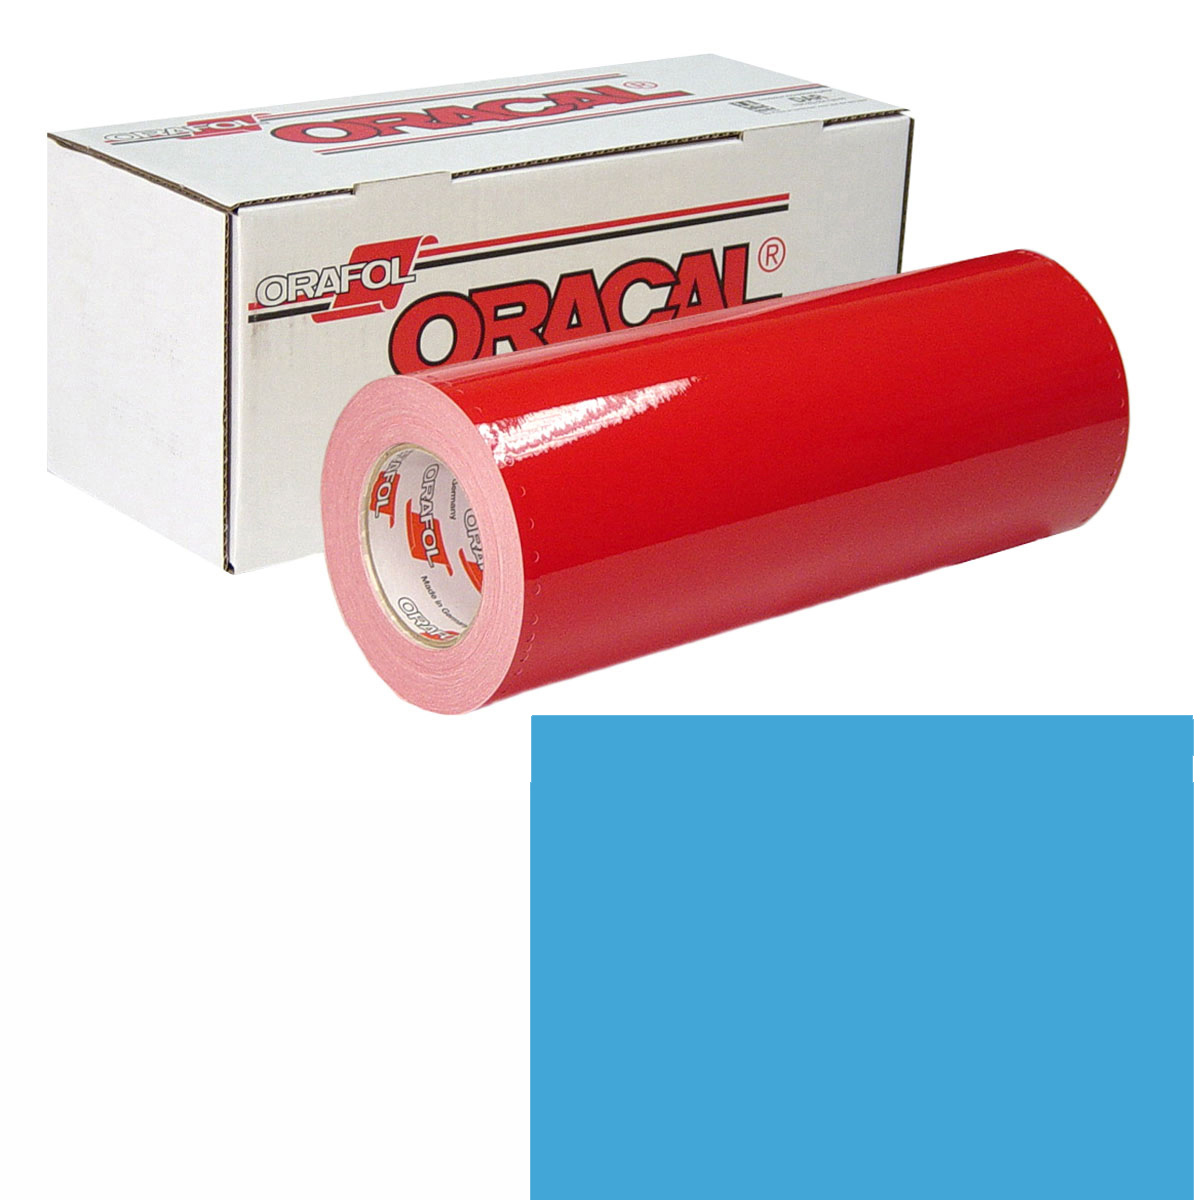 ORACAL 951 15In X 50Yd 056 Ice Blue